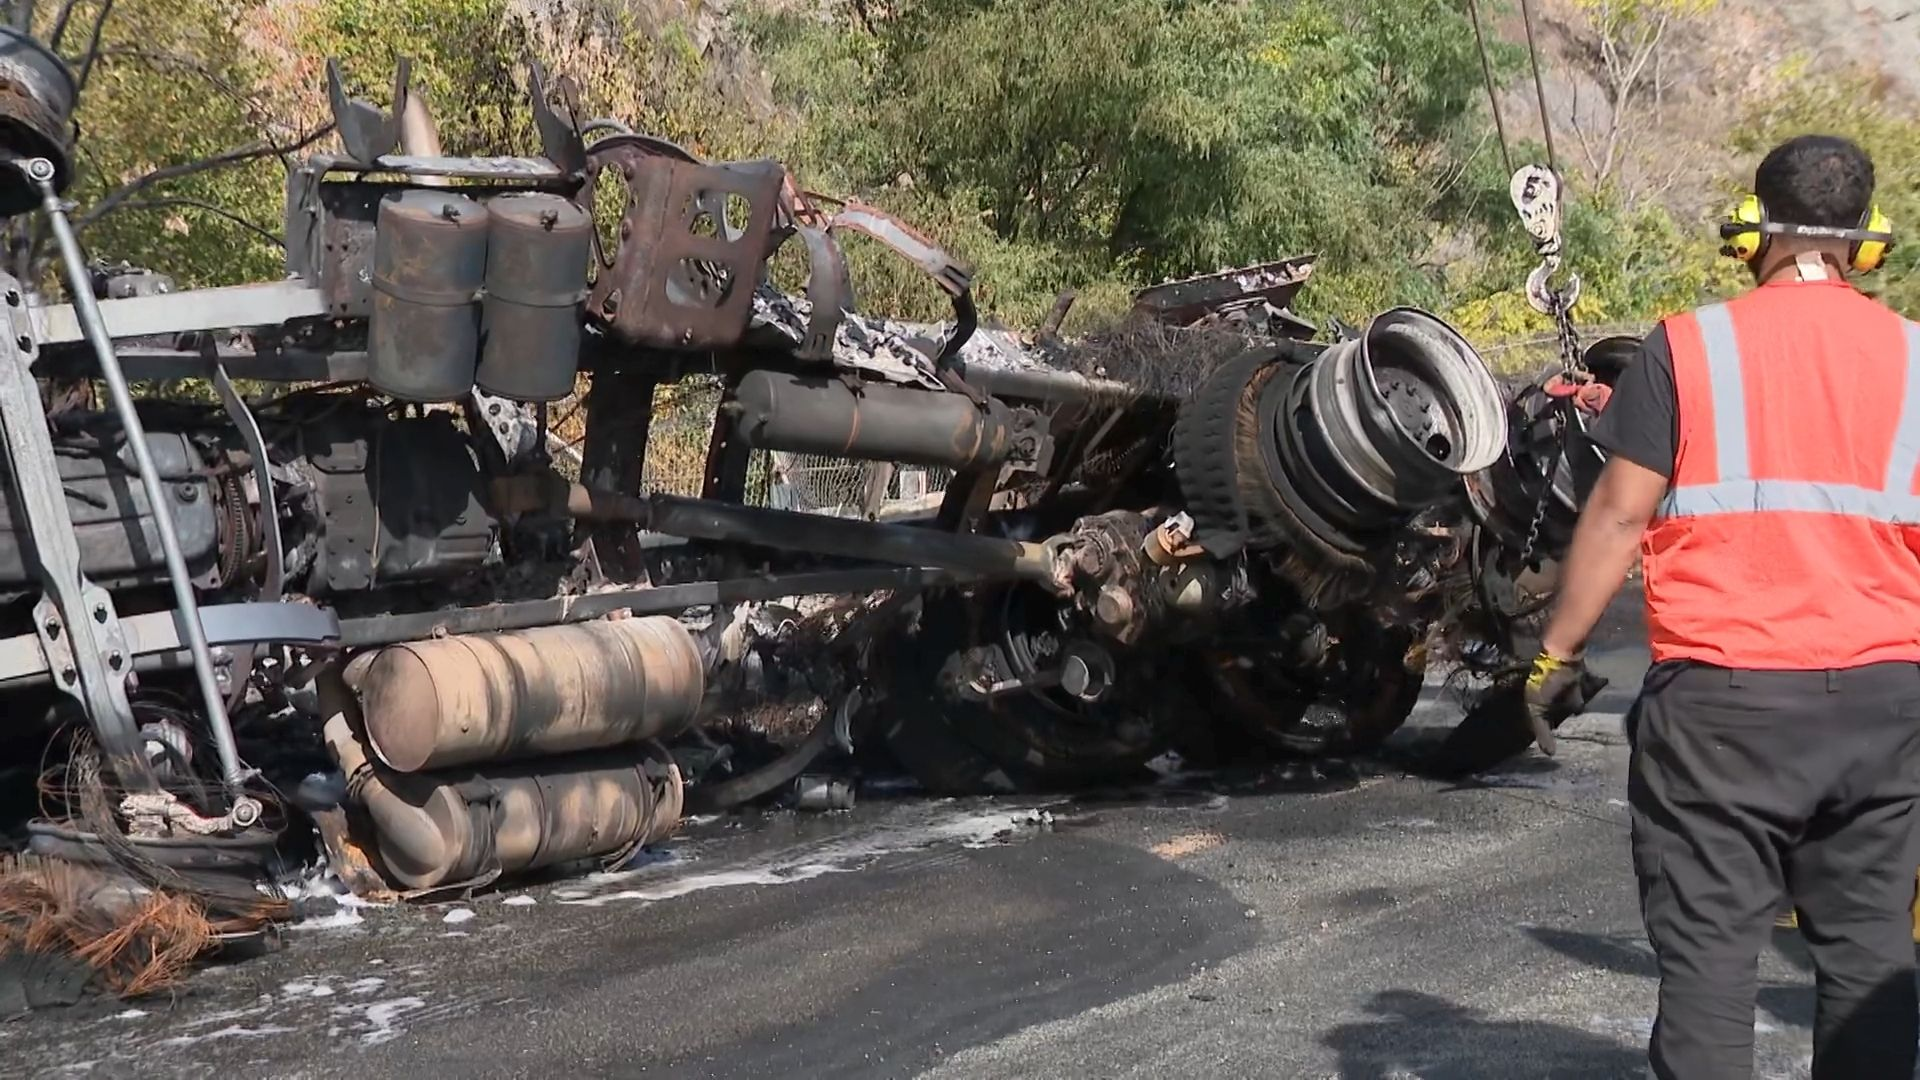 Tanker overturns, bursts into flames on I-287 in New Jersey